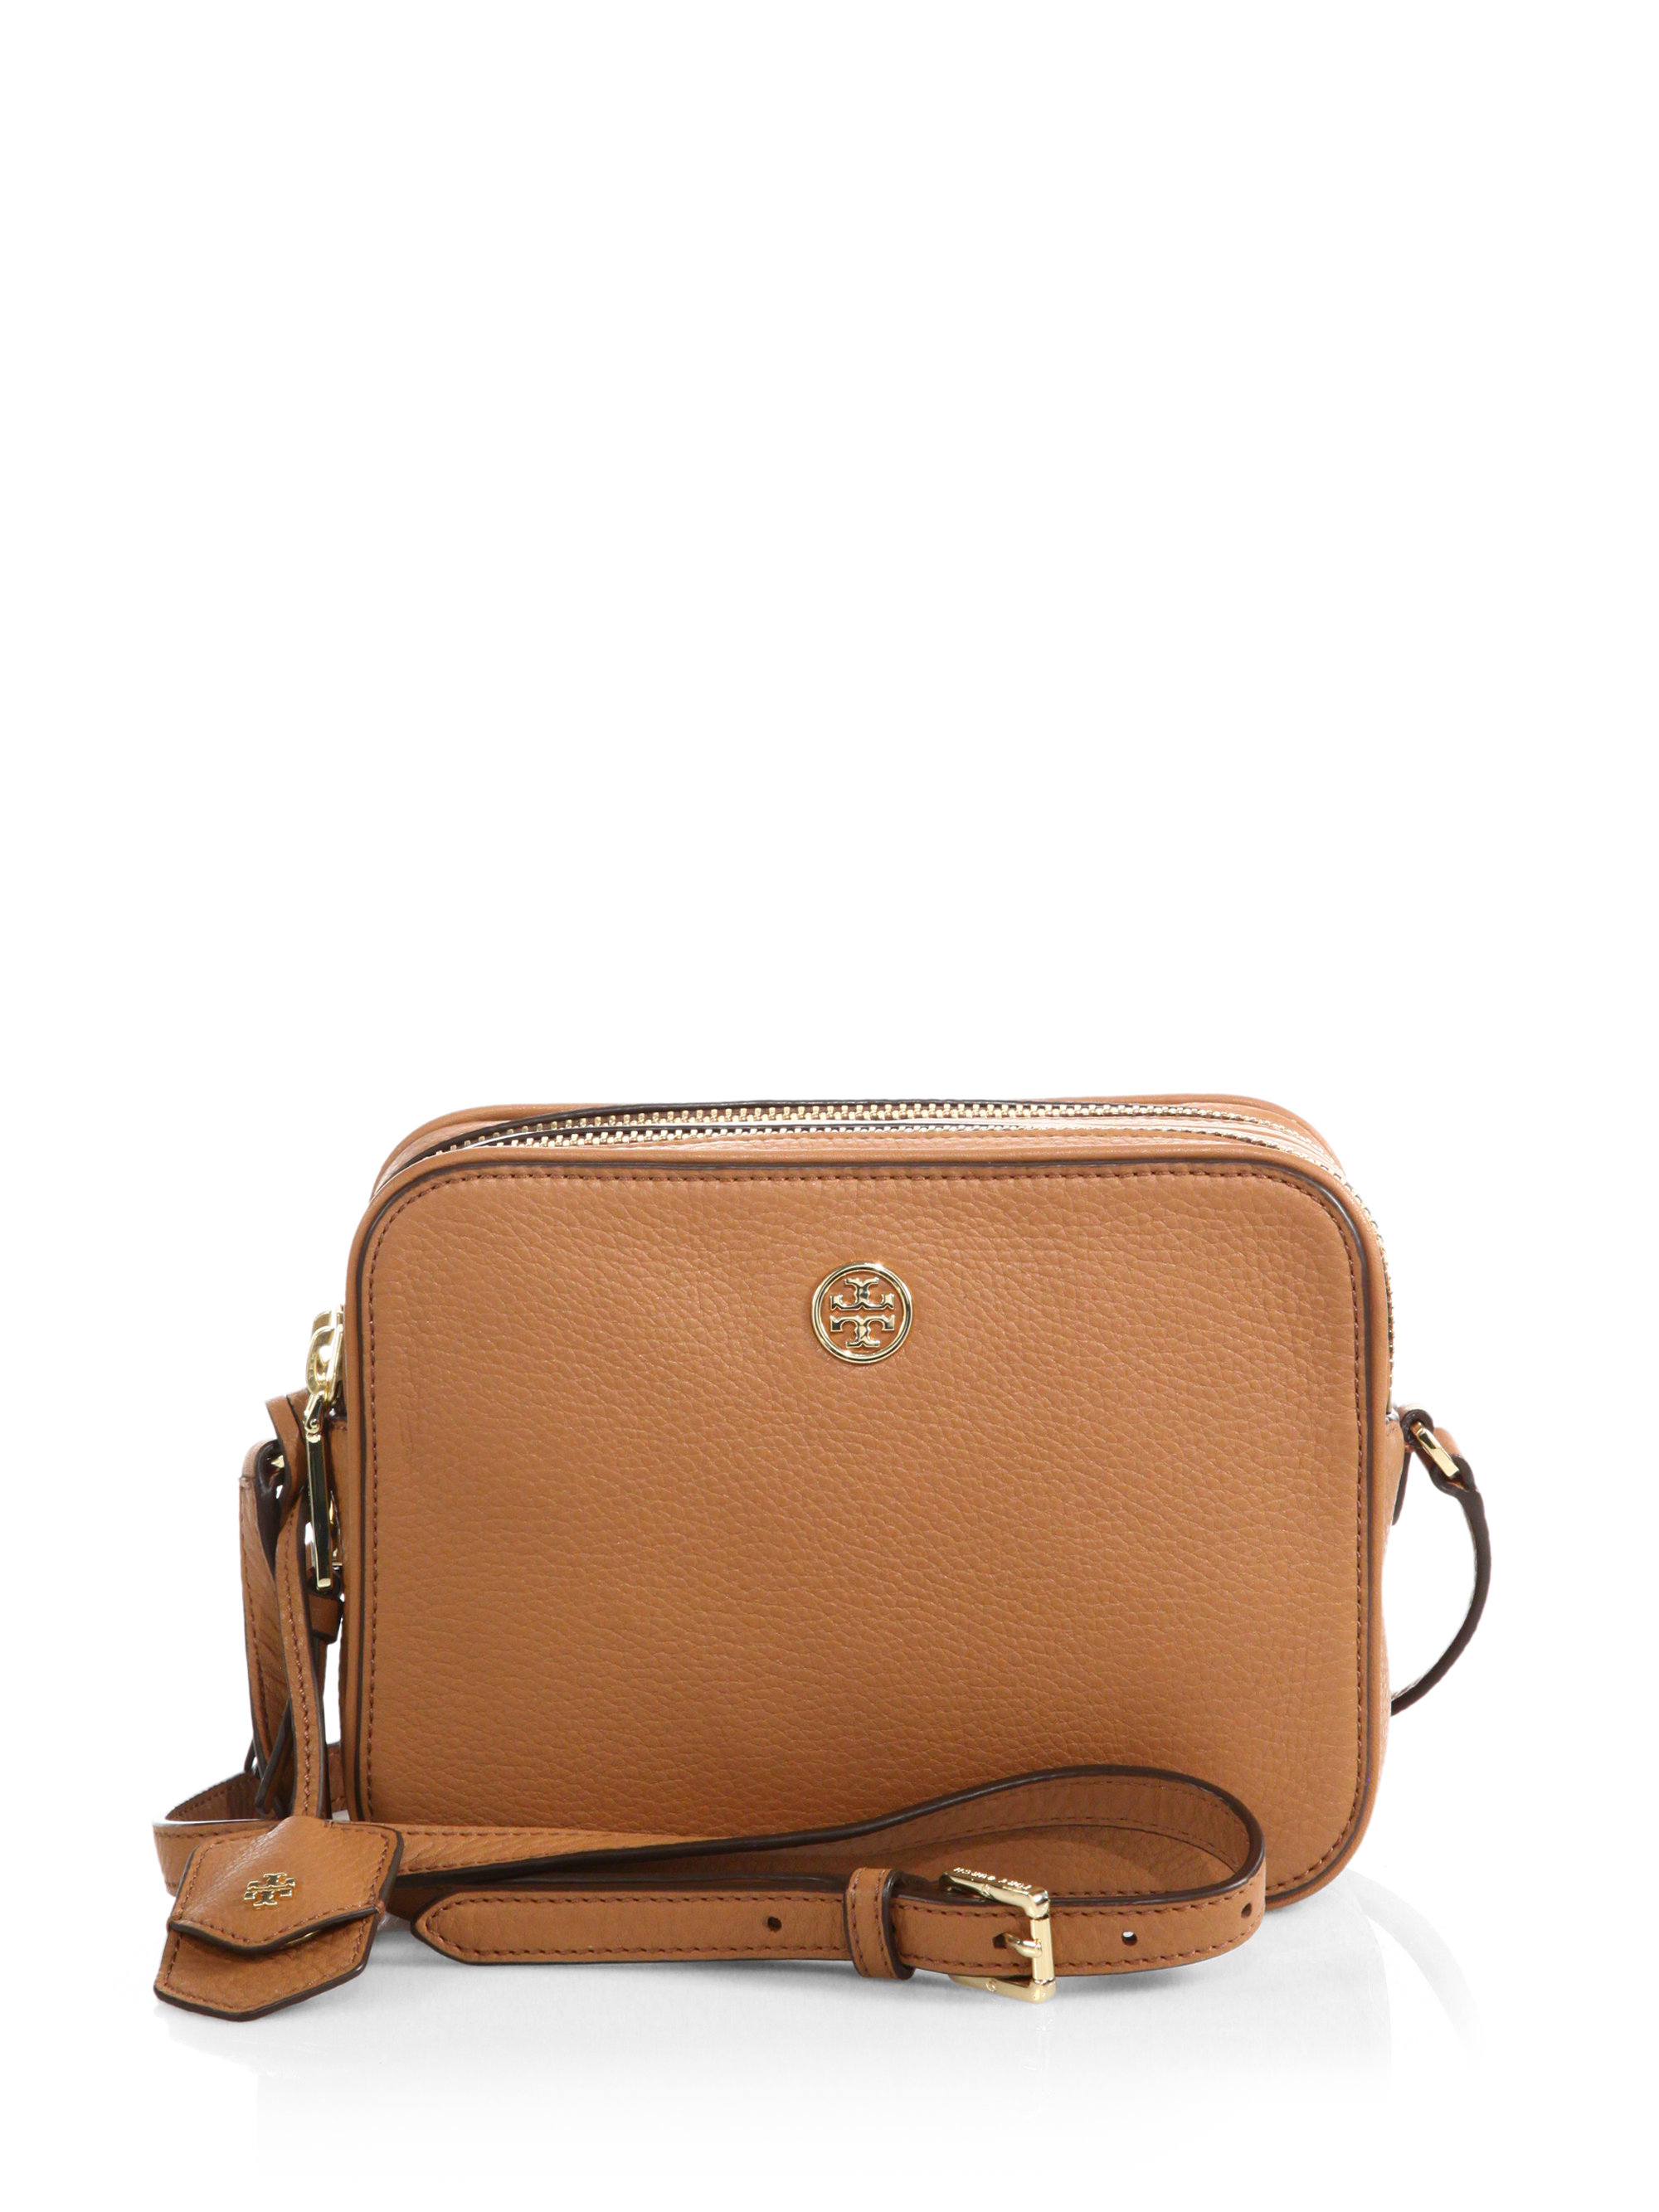 e8581bf42ed2 Lyst Tory Burch Robinson Pebbled Double Zip Crossbody Bag In Brown